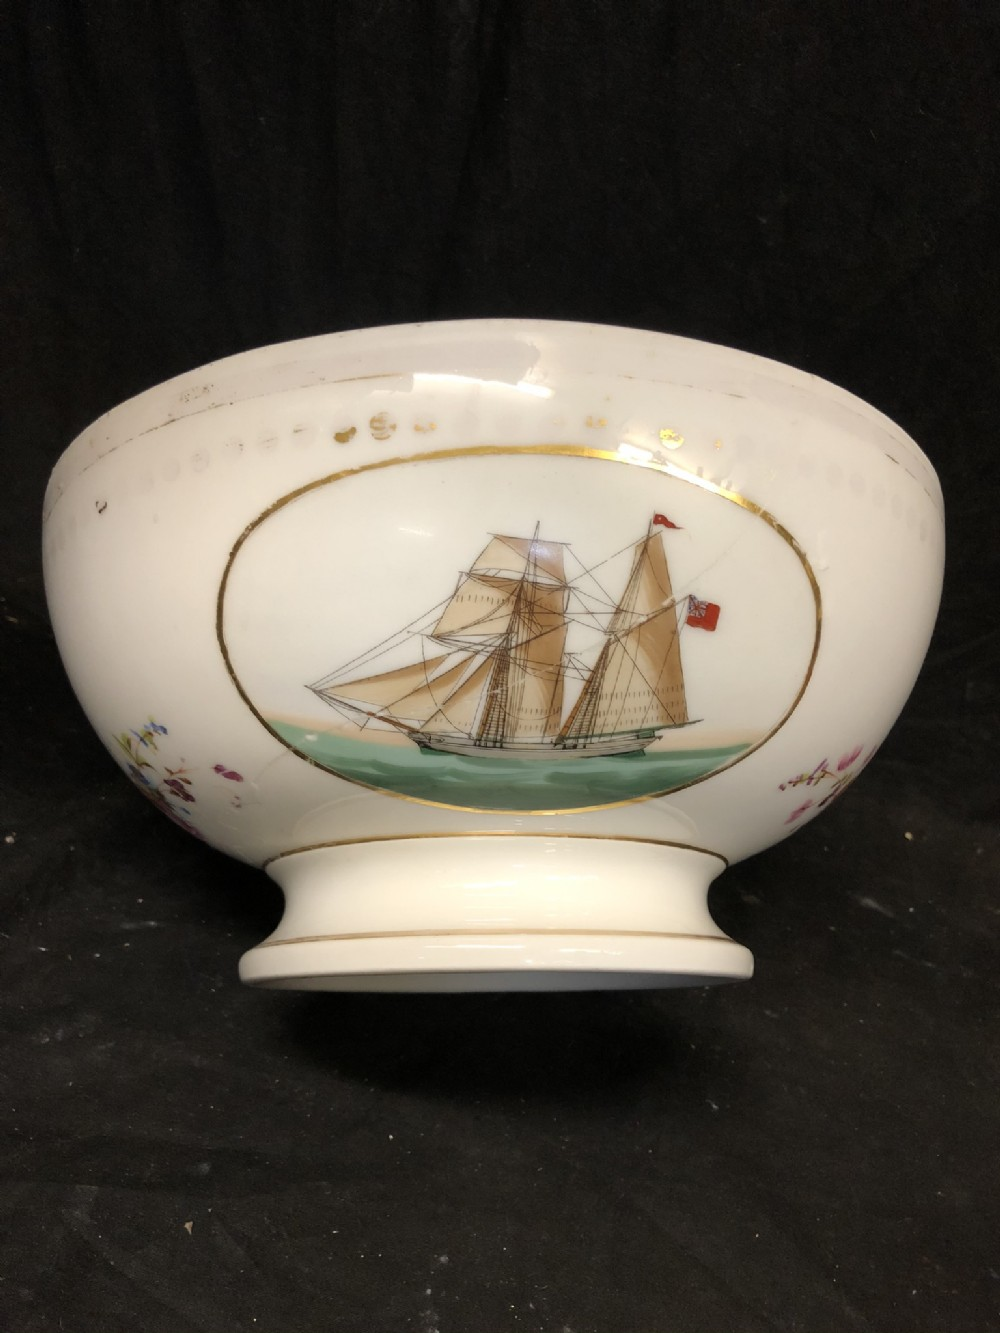 rare early c19th english punchbowl depicting east indiamens in full sail